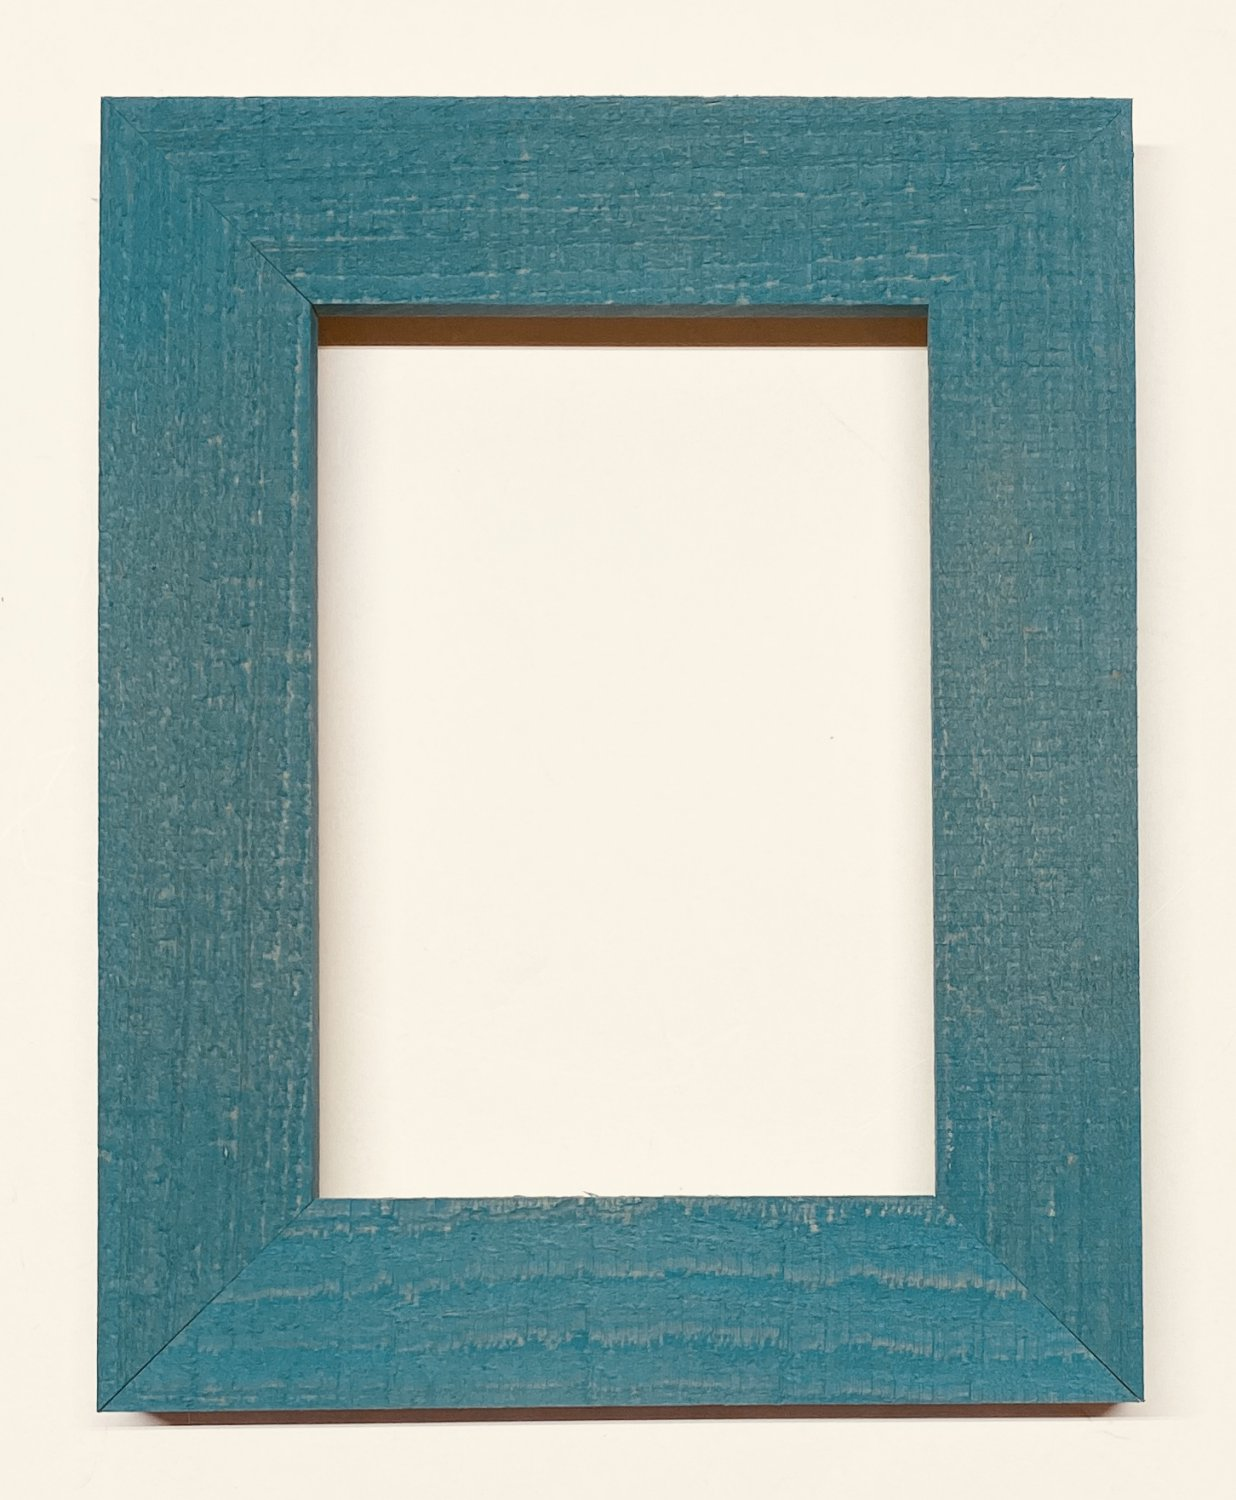 "F012 9 x 9 1-1/2"" Lagoon Cypress Picture Frame"